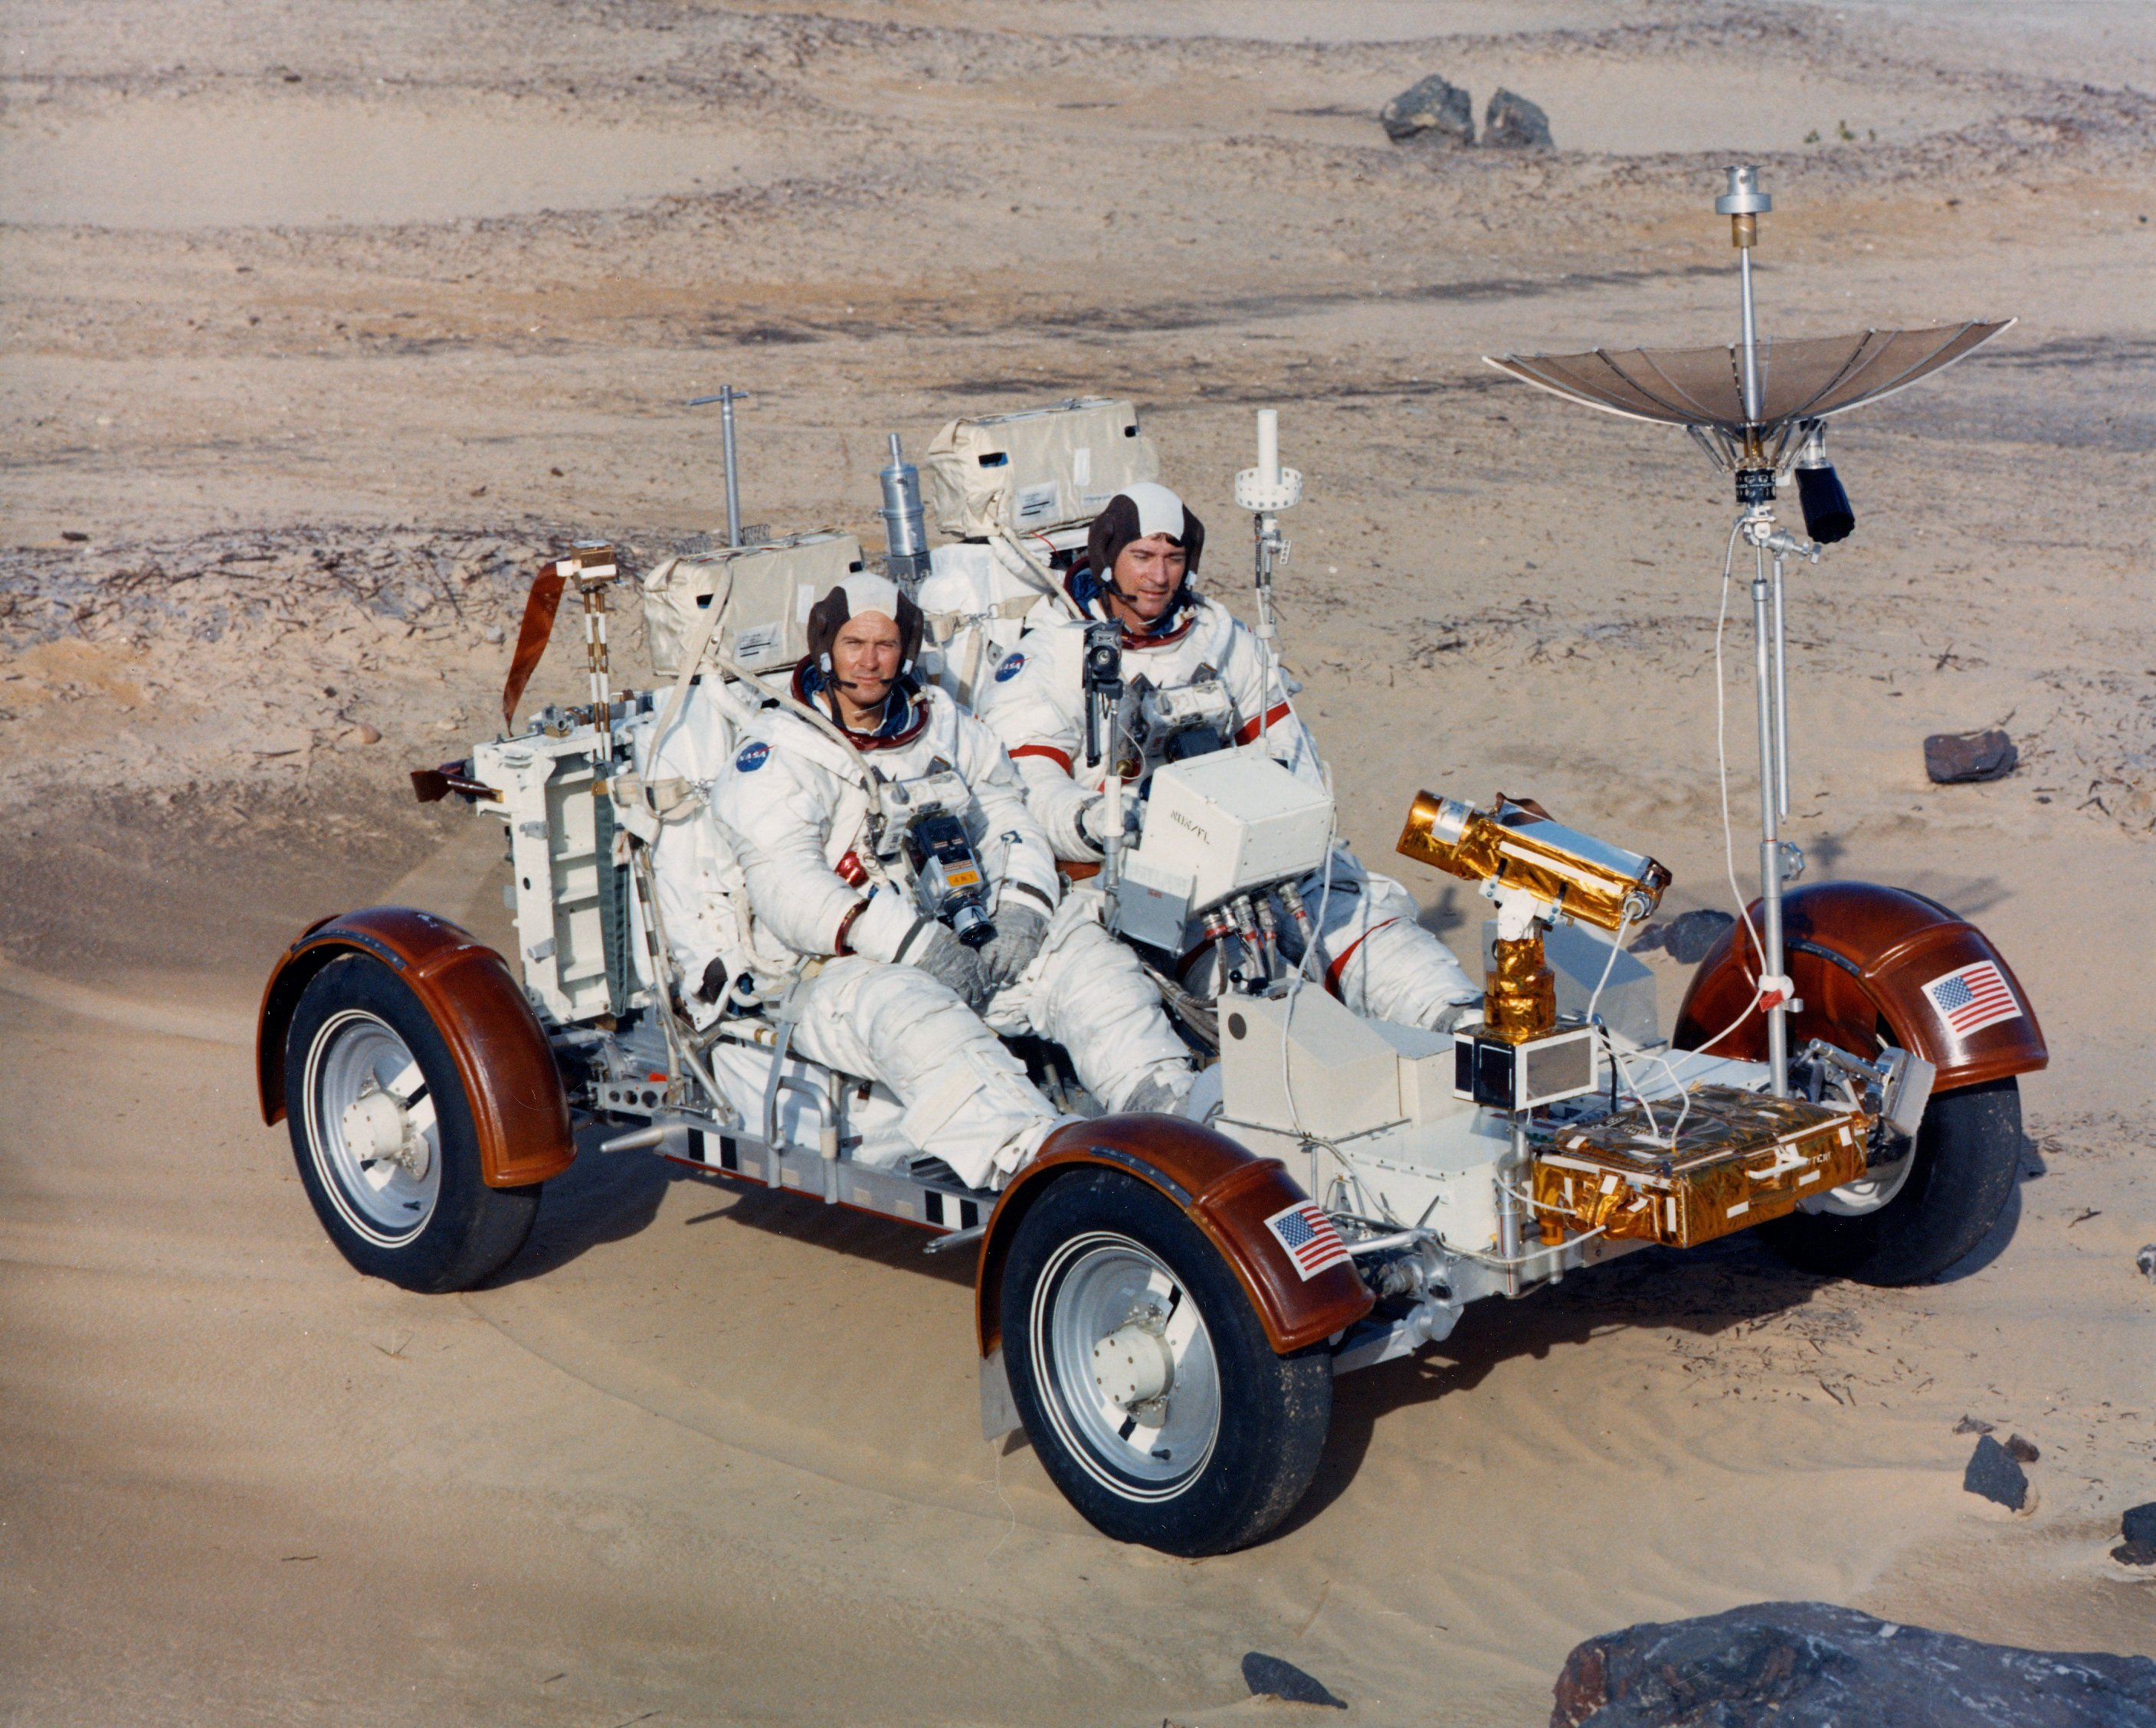 Moon_Buggy_Ap16-KSC-71PC-777.jpg